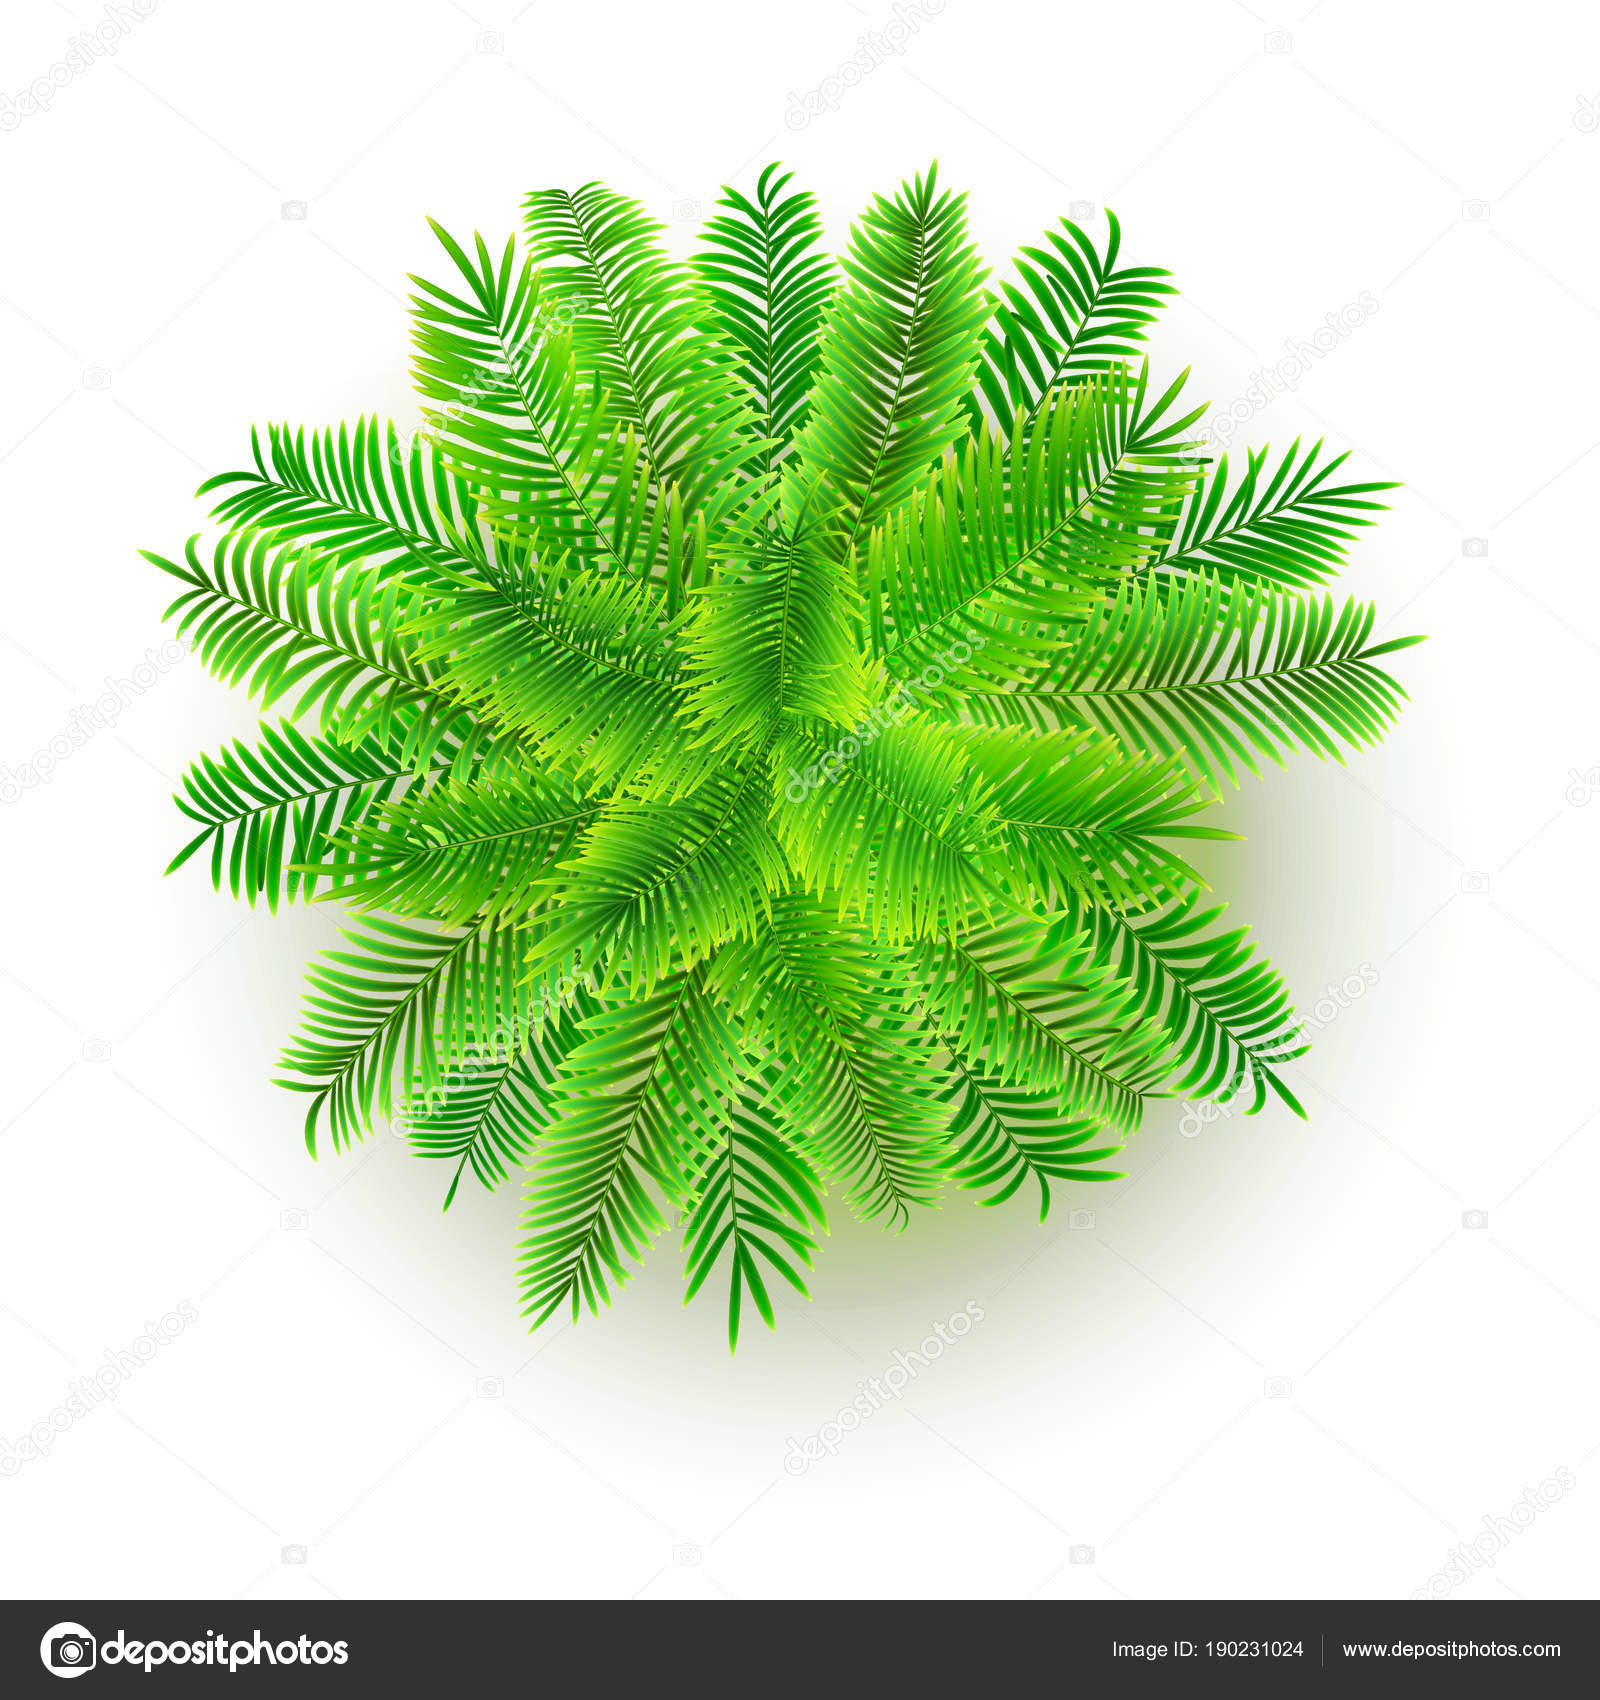 Green palm tree, vector 3D illustration isolated on white